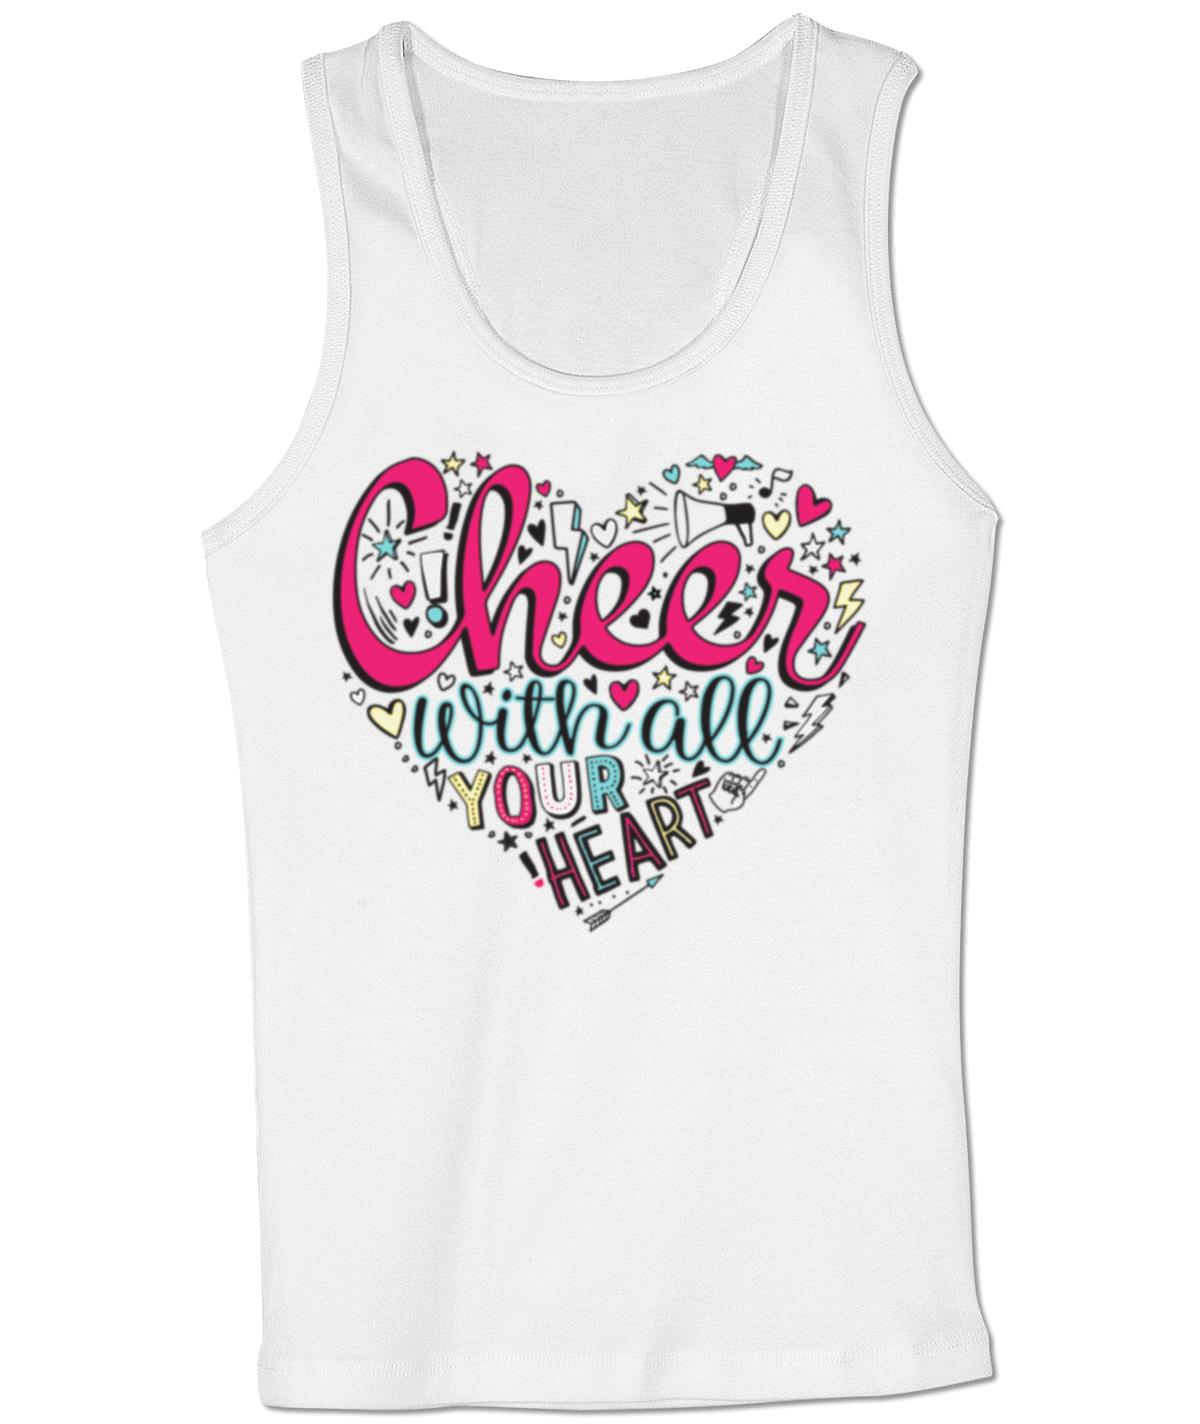 CHEER WITH ALL YOUR HEART TANK